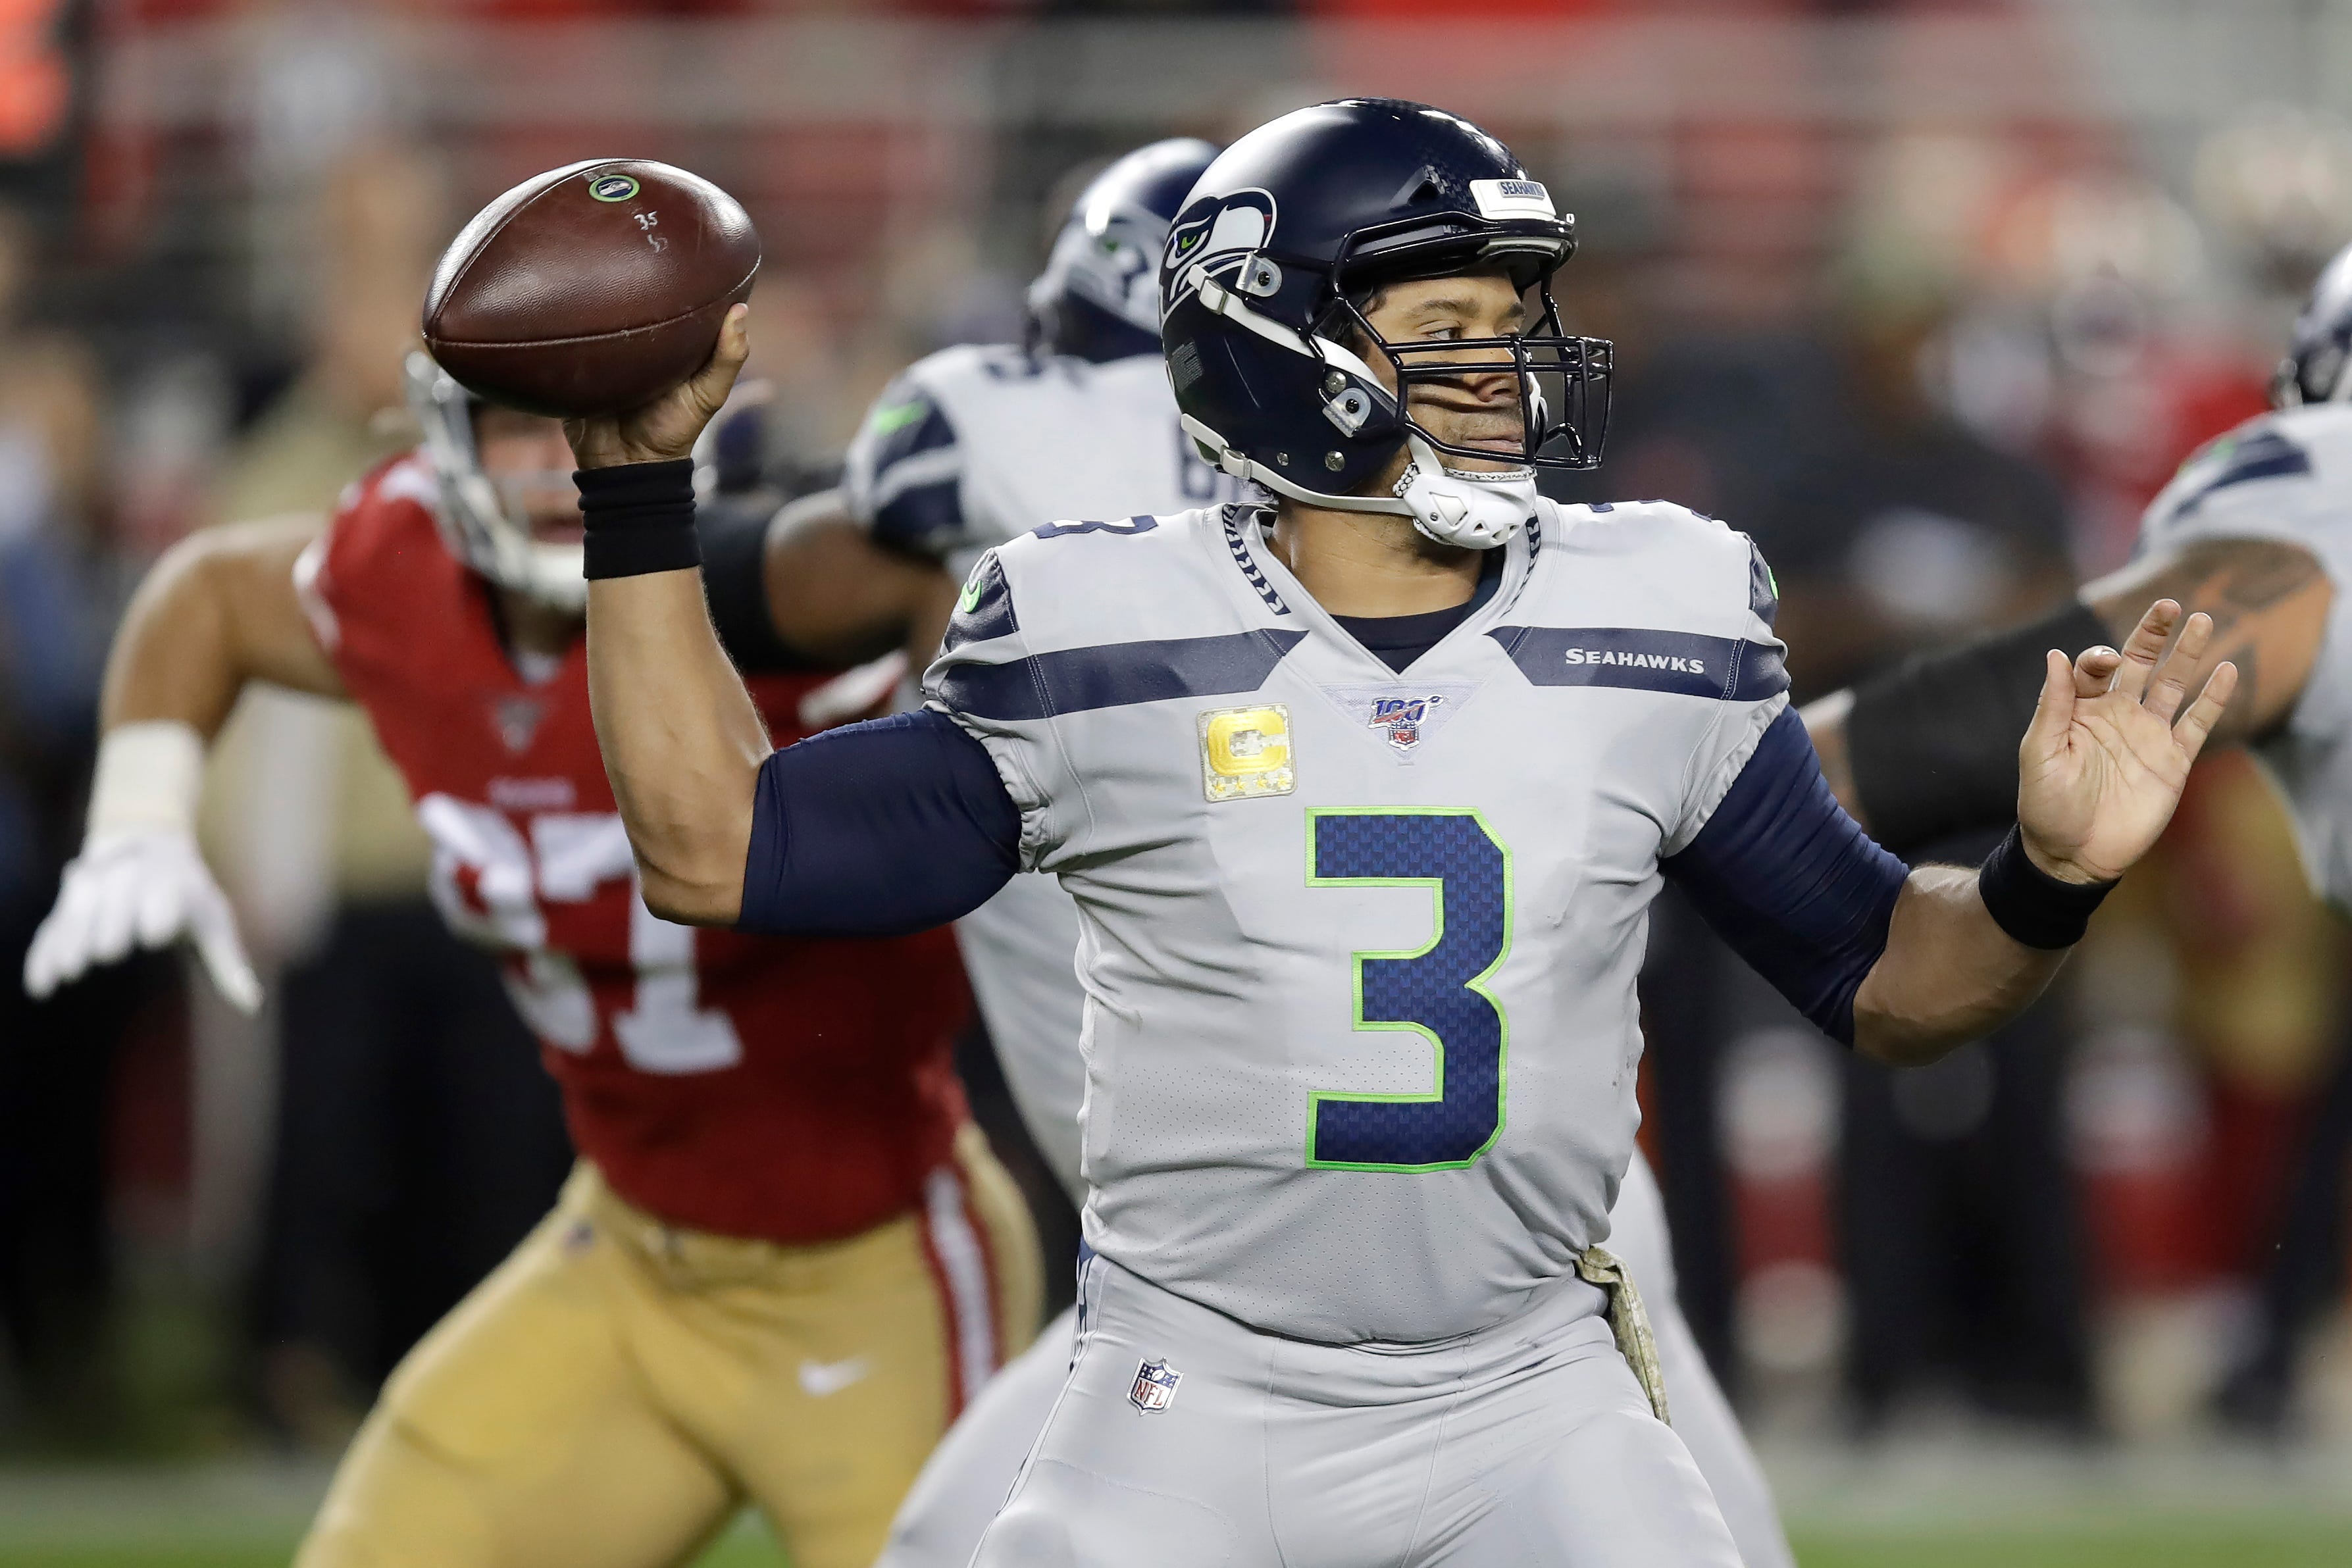 Eagles Preview Seahawks Russell Wilson Having An Mvp Season